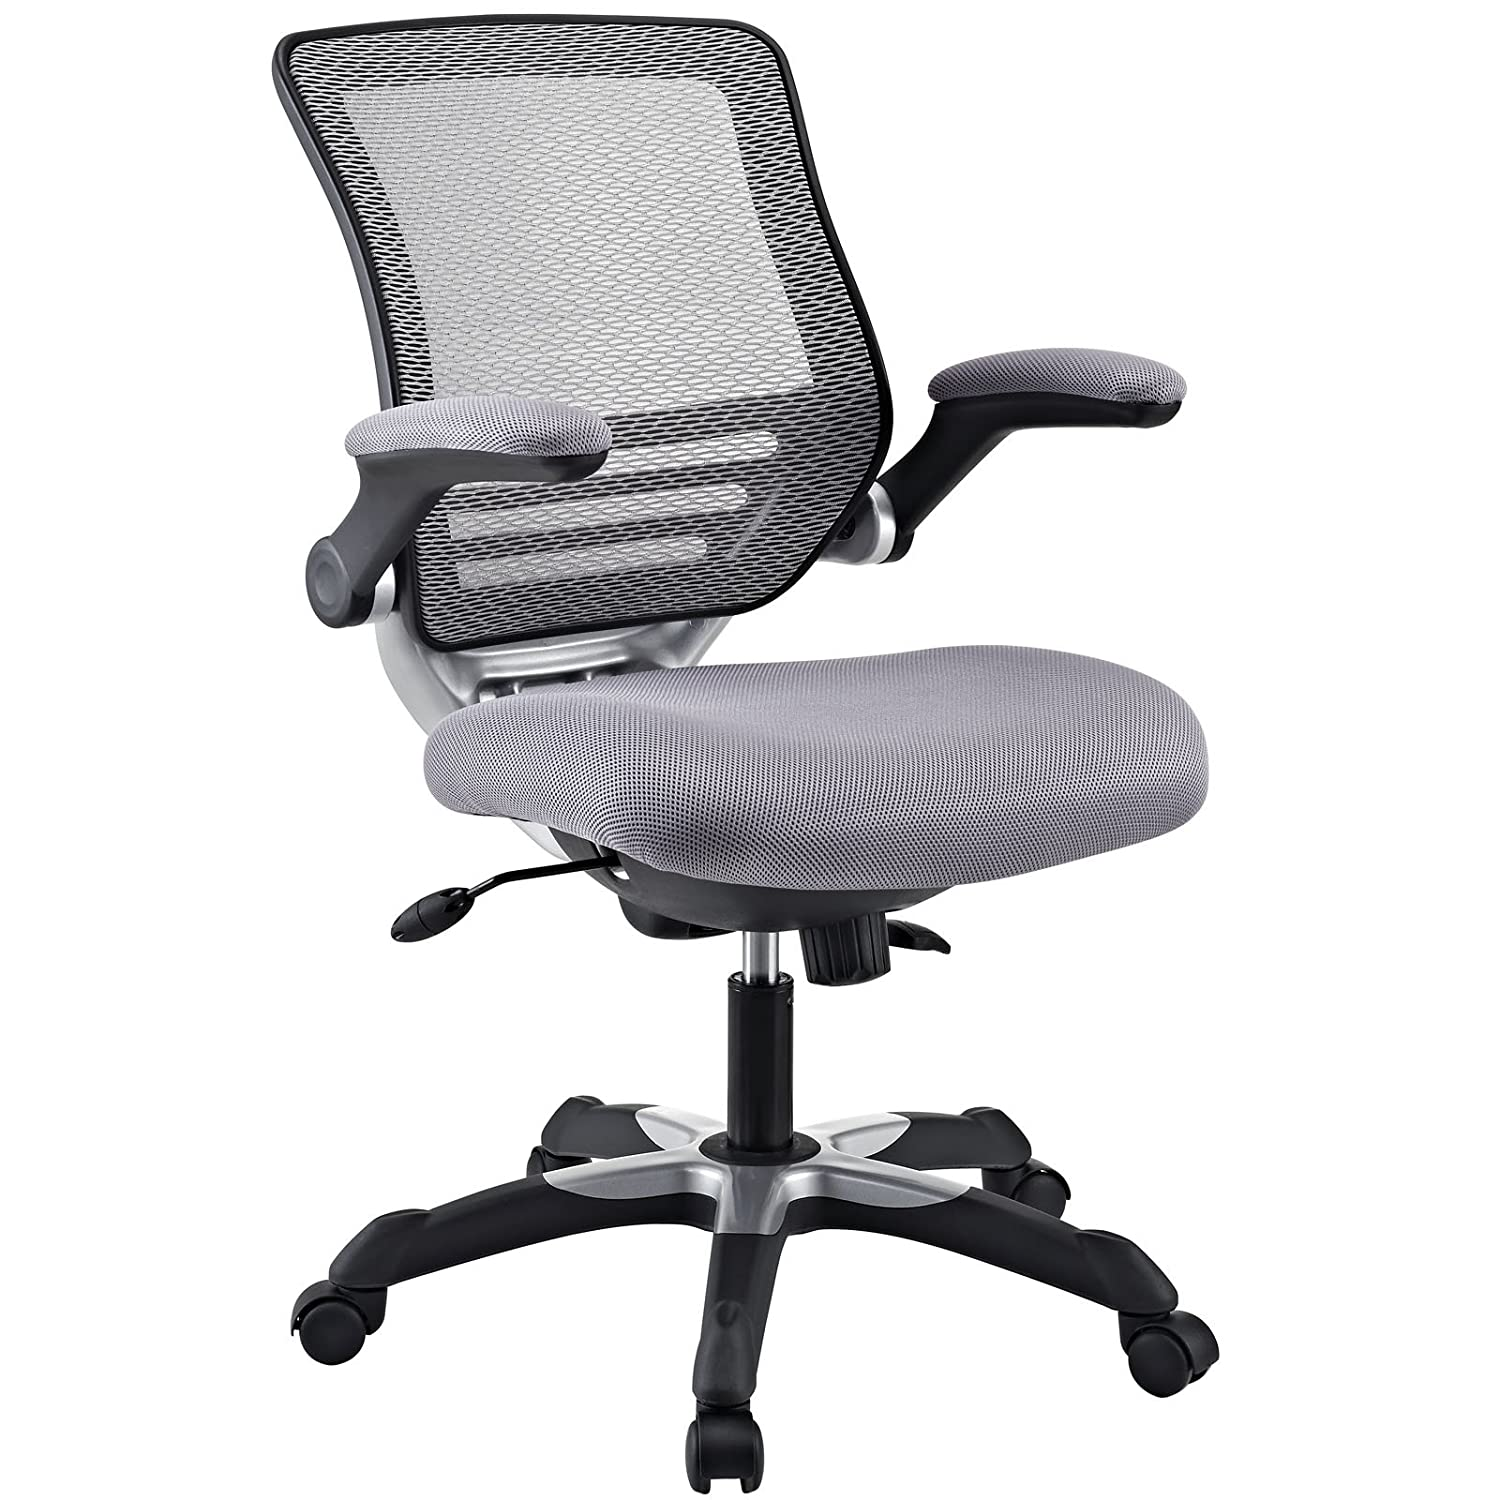 Amazoncom Modway Edge Mesh Back And Gray Mesh Seat Office Chair - Grey office chair